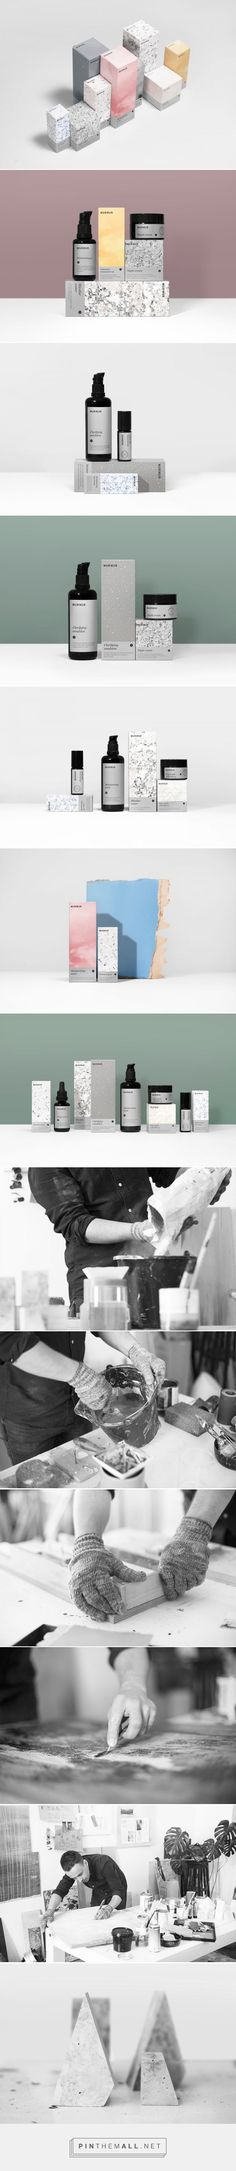 MURMUR - Packaging of the World - Creative Package Design Gallery - http://www.packagingoftheworld.com/2016/07/murmur.html